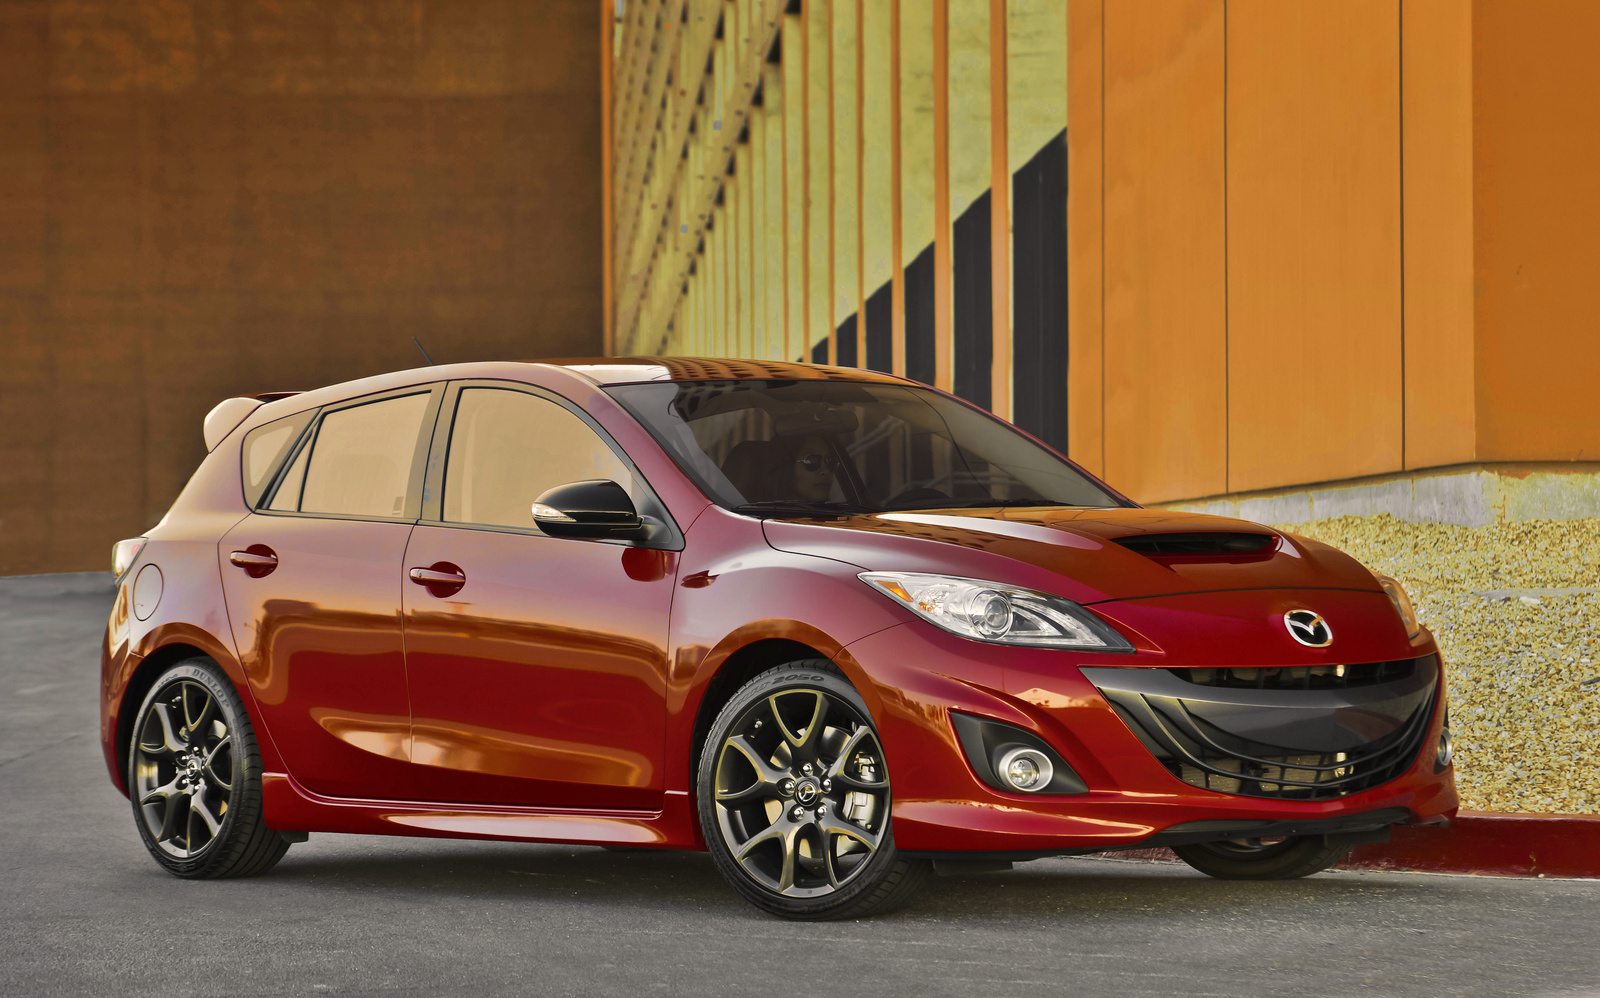 Click image for larger version  Name:2013_mazda_mazdaspeed3-pic-5162116543432052935.jpeg Views:205 Size:600.2 KB ID:183552